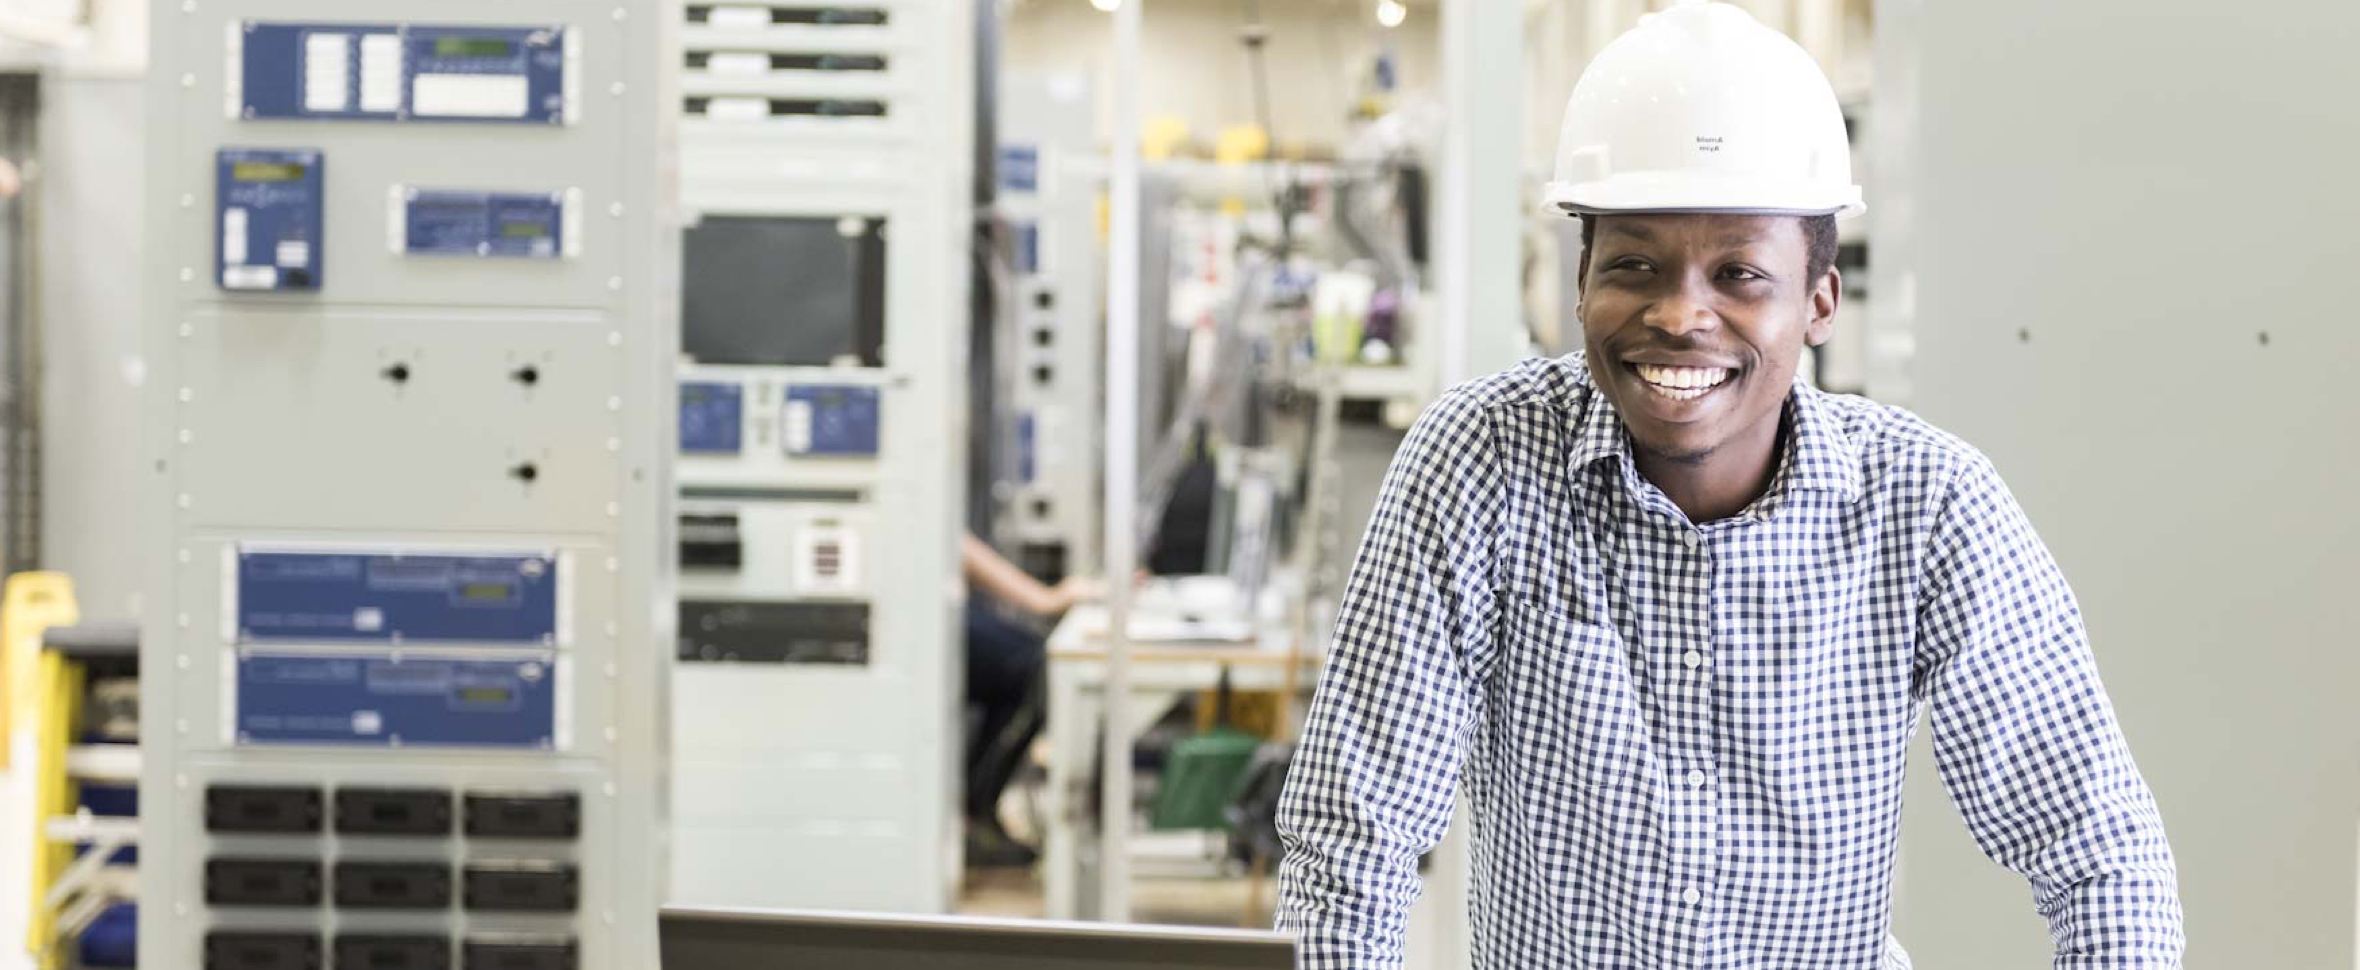 Positive Energy - Smiling engineer proud of his high-quality workmanship at Systems Control